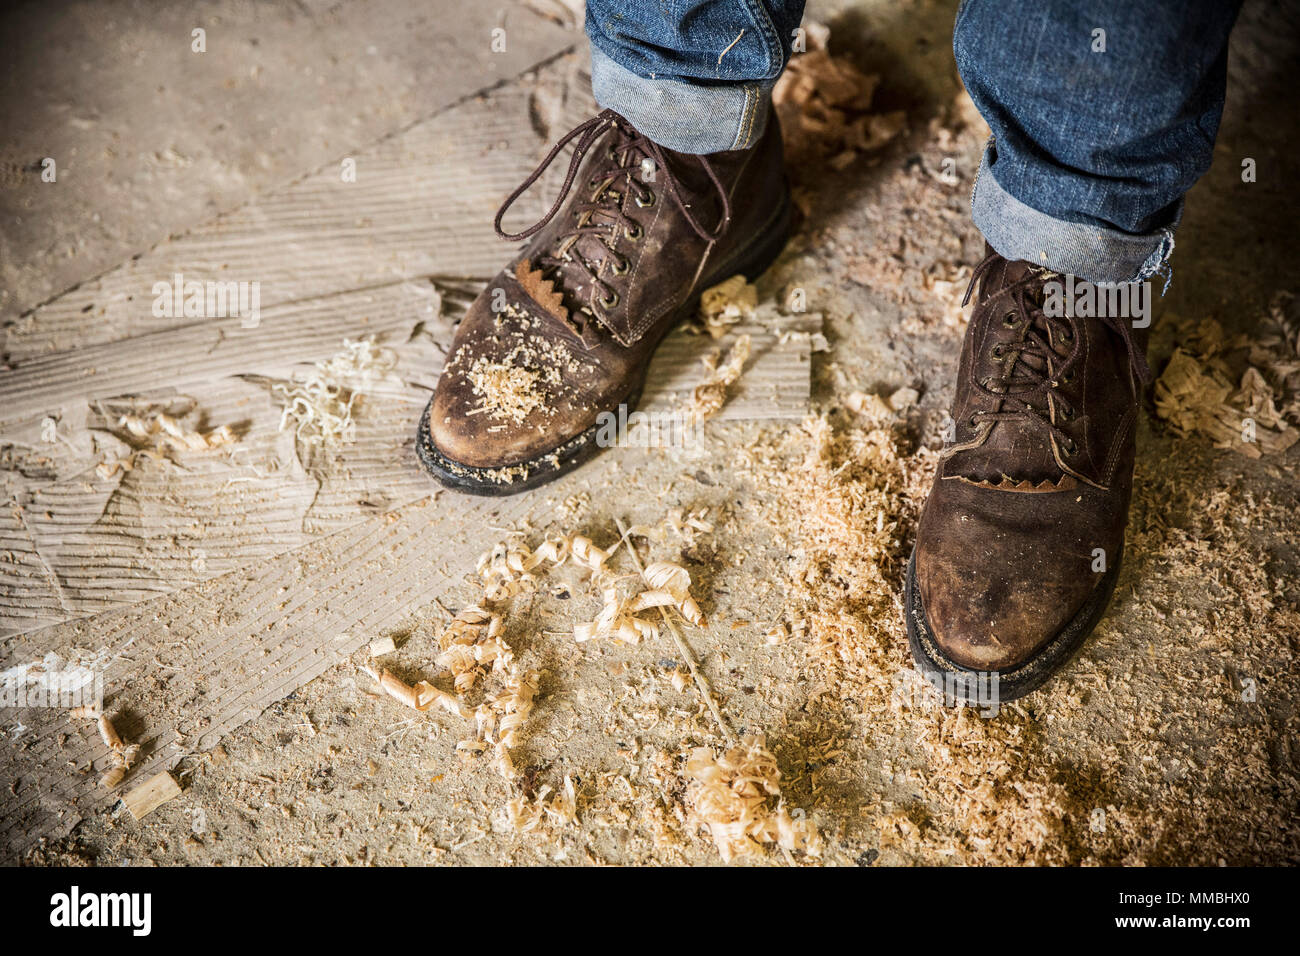 High angle view of a man wearing jeans and brown leather boots standing in a workshop, wood shavings on the floor. - Stock Image